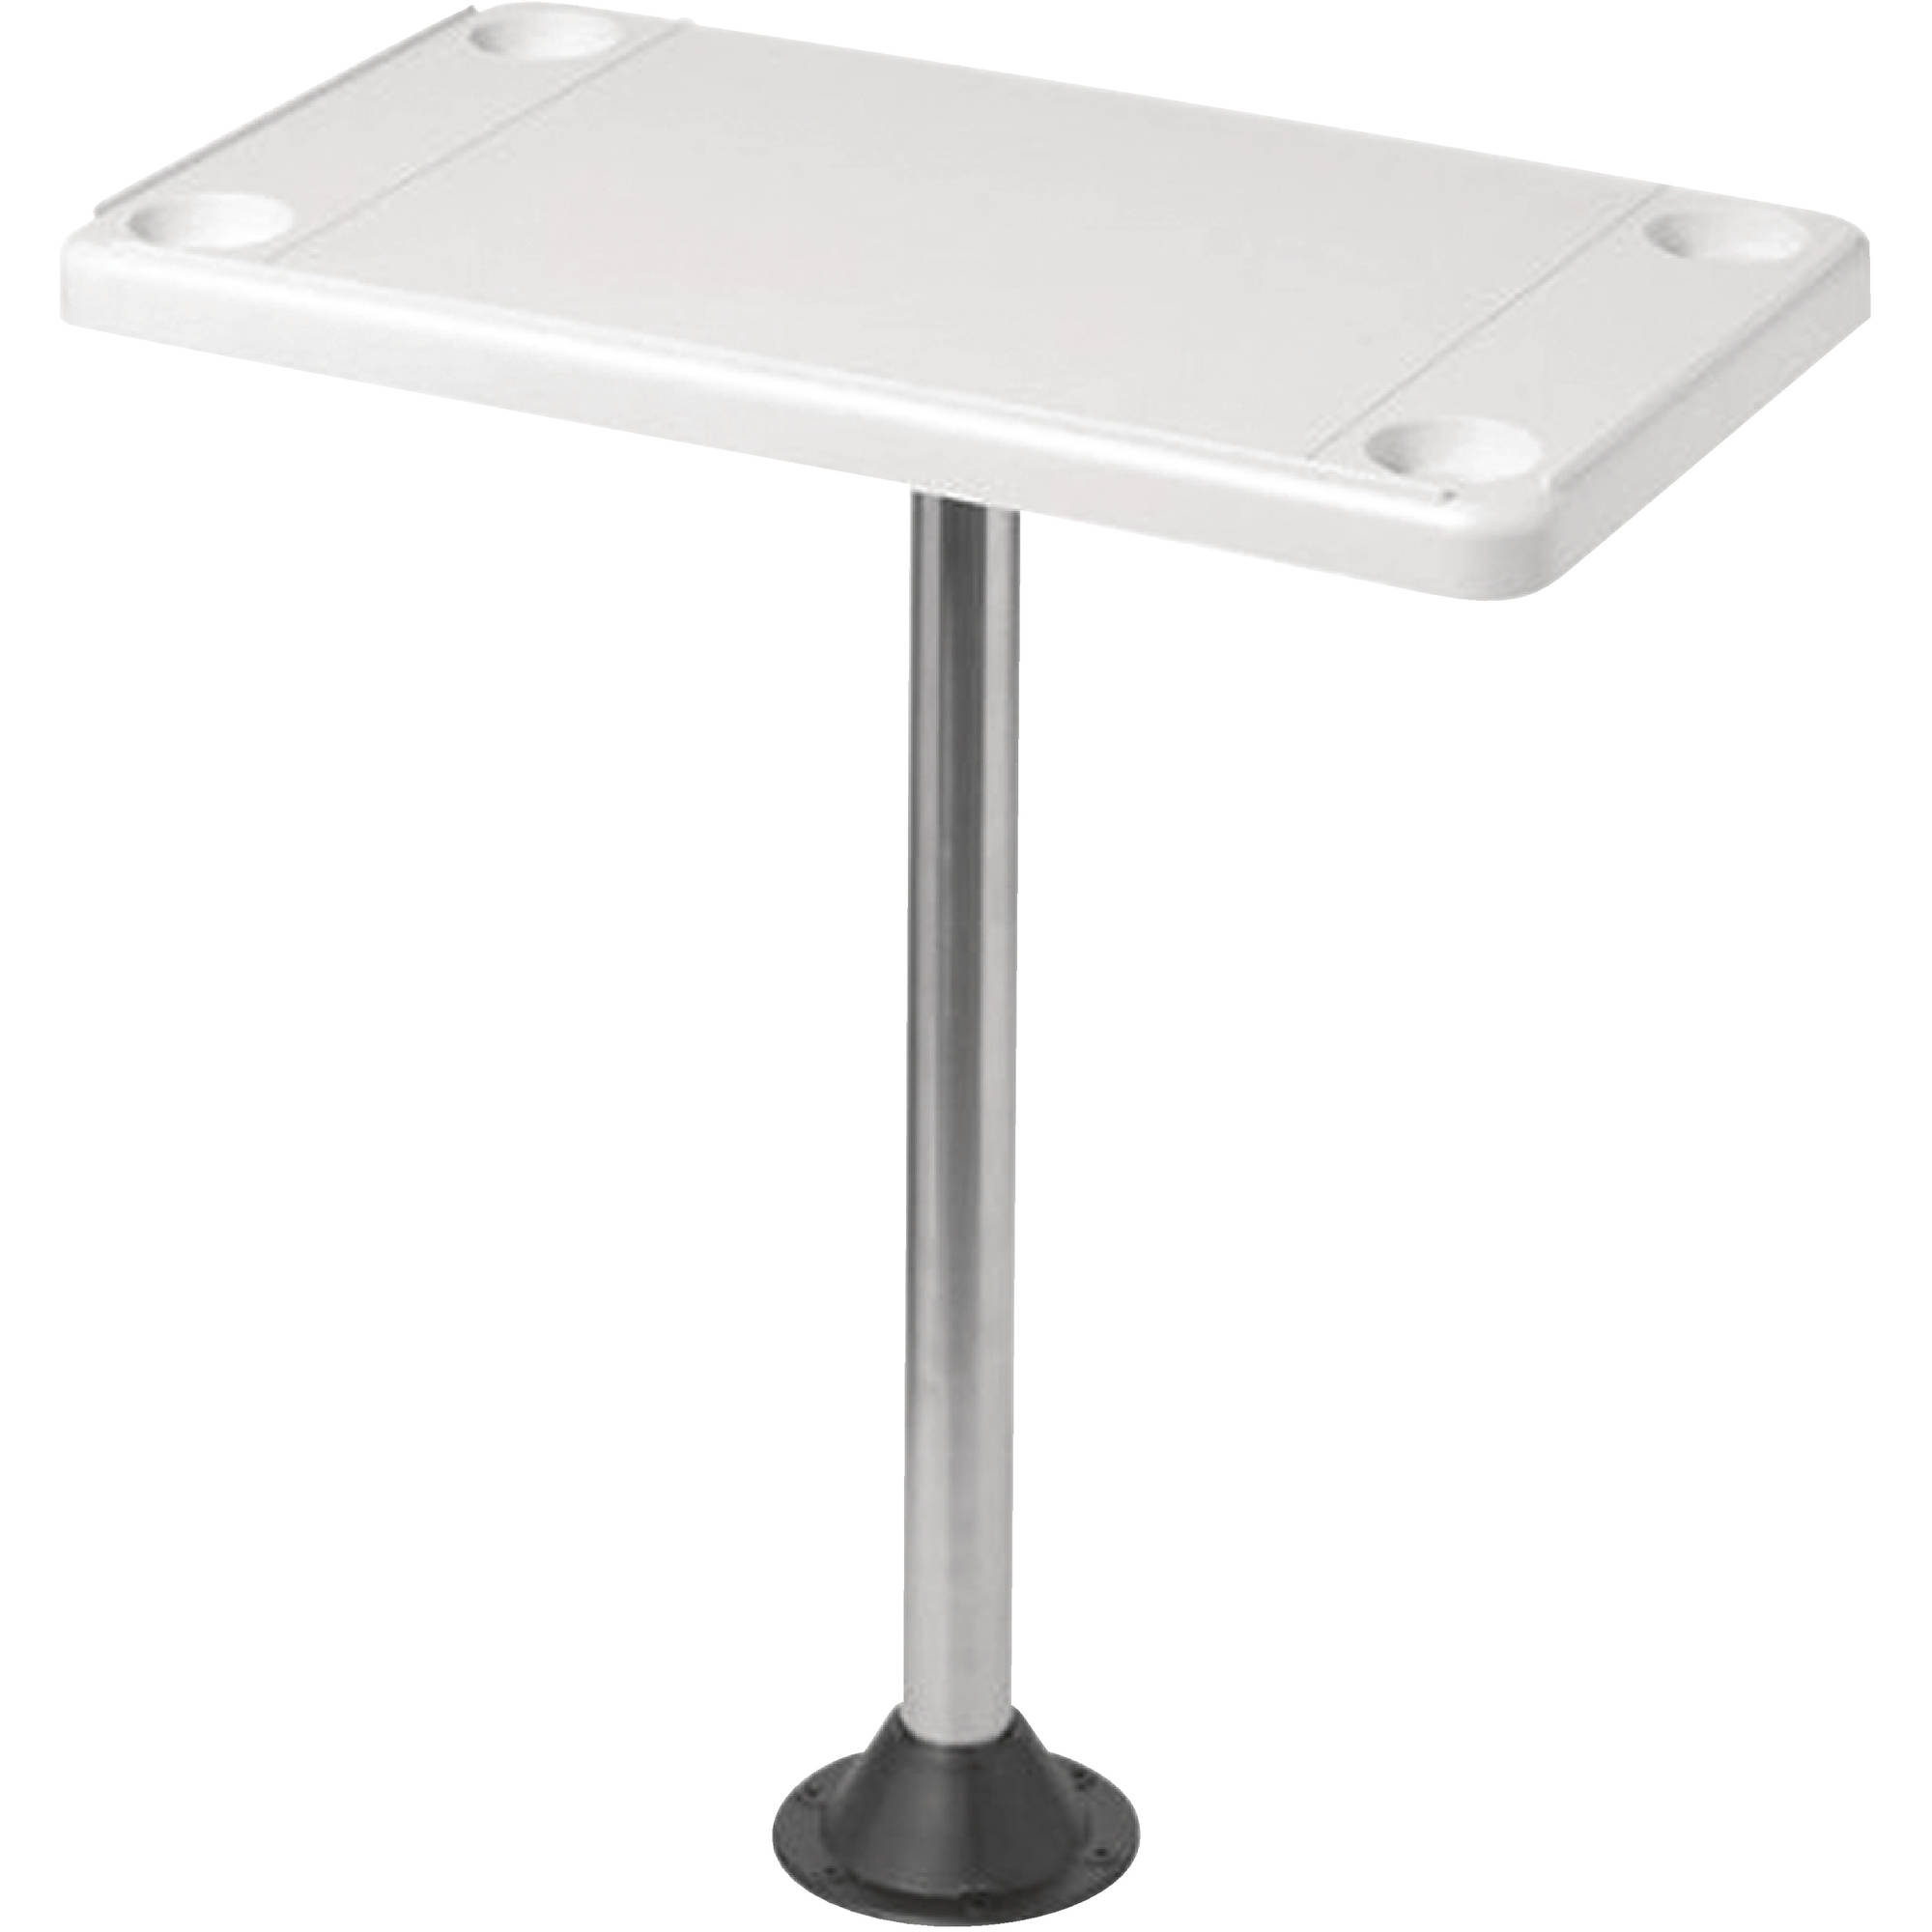 Detmar Removable Pontoon Tables - Stainless